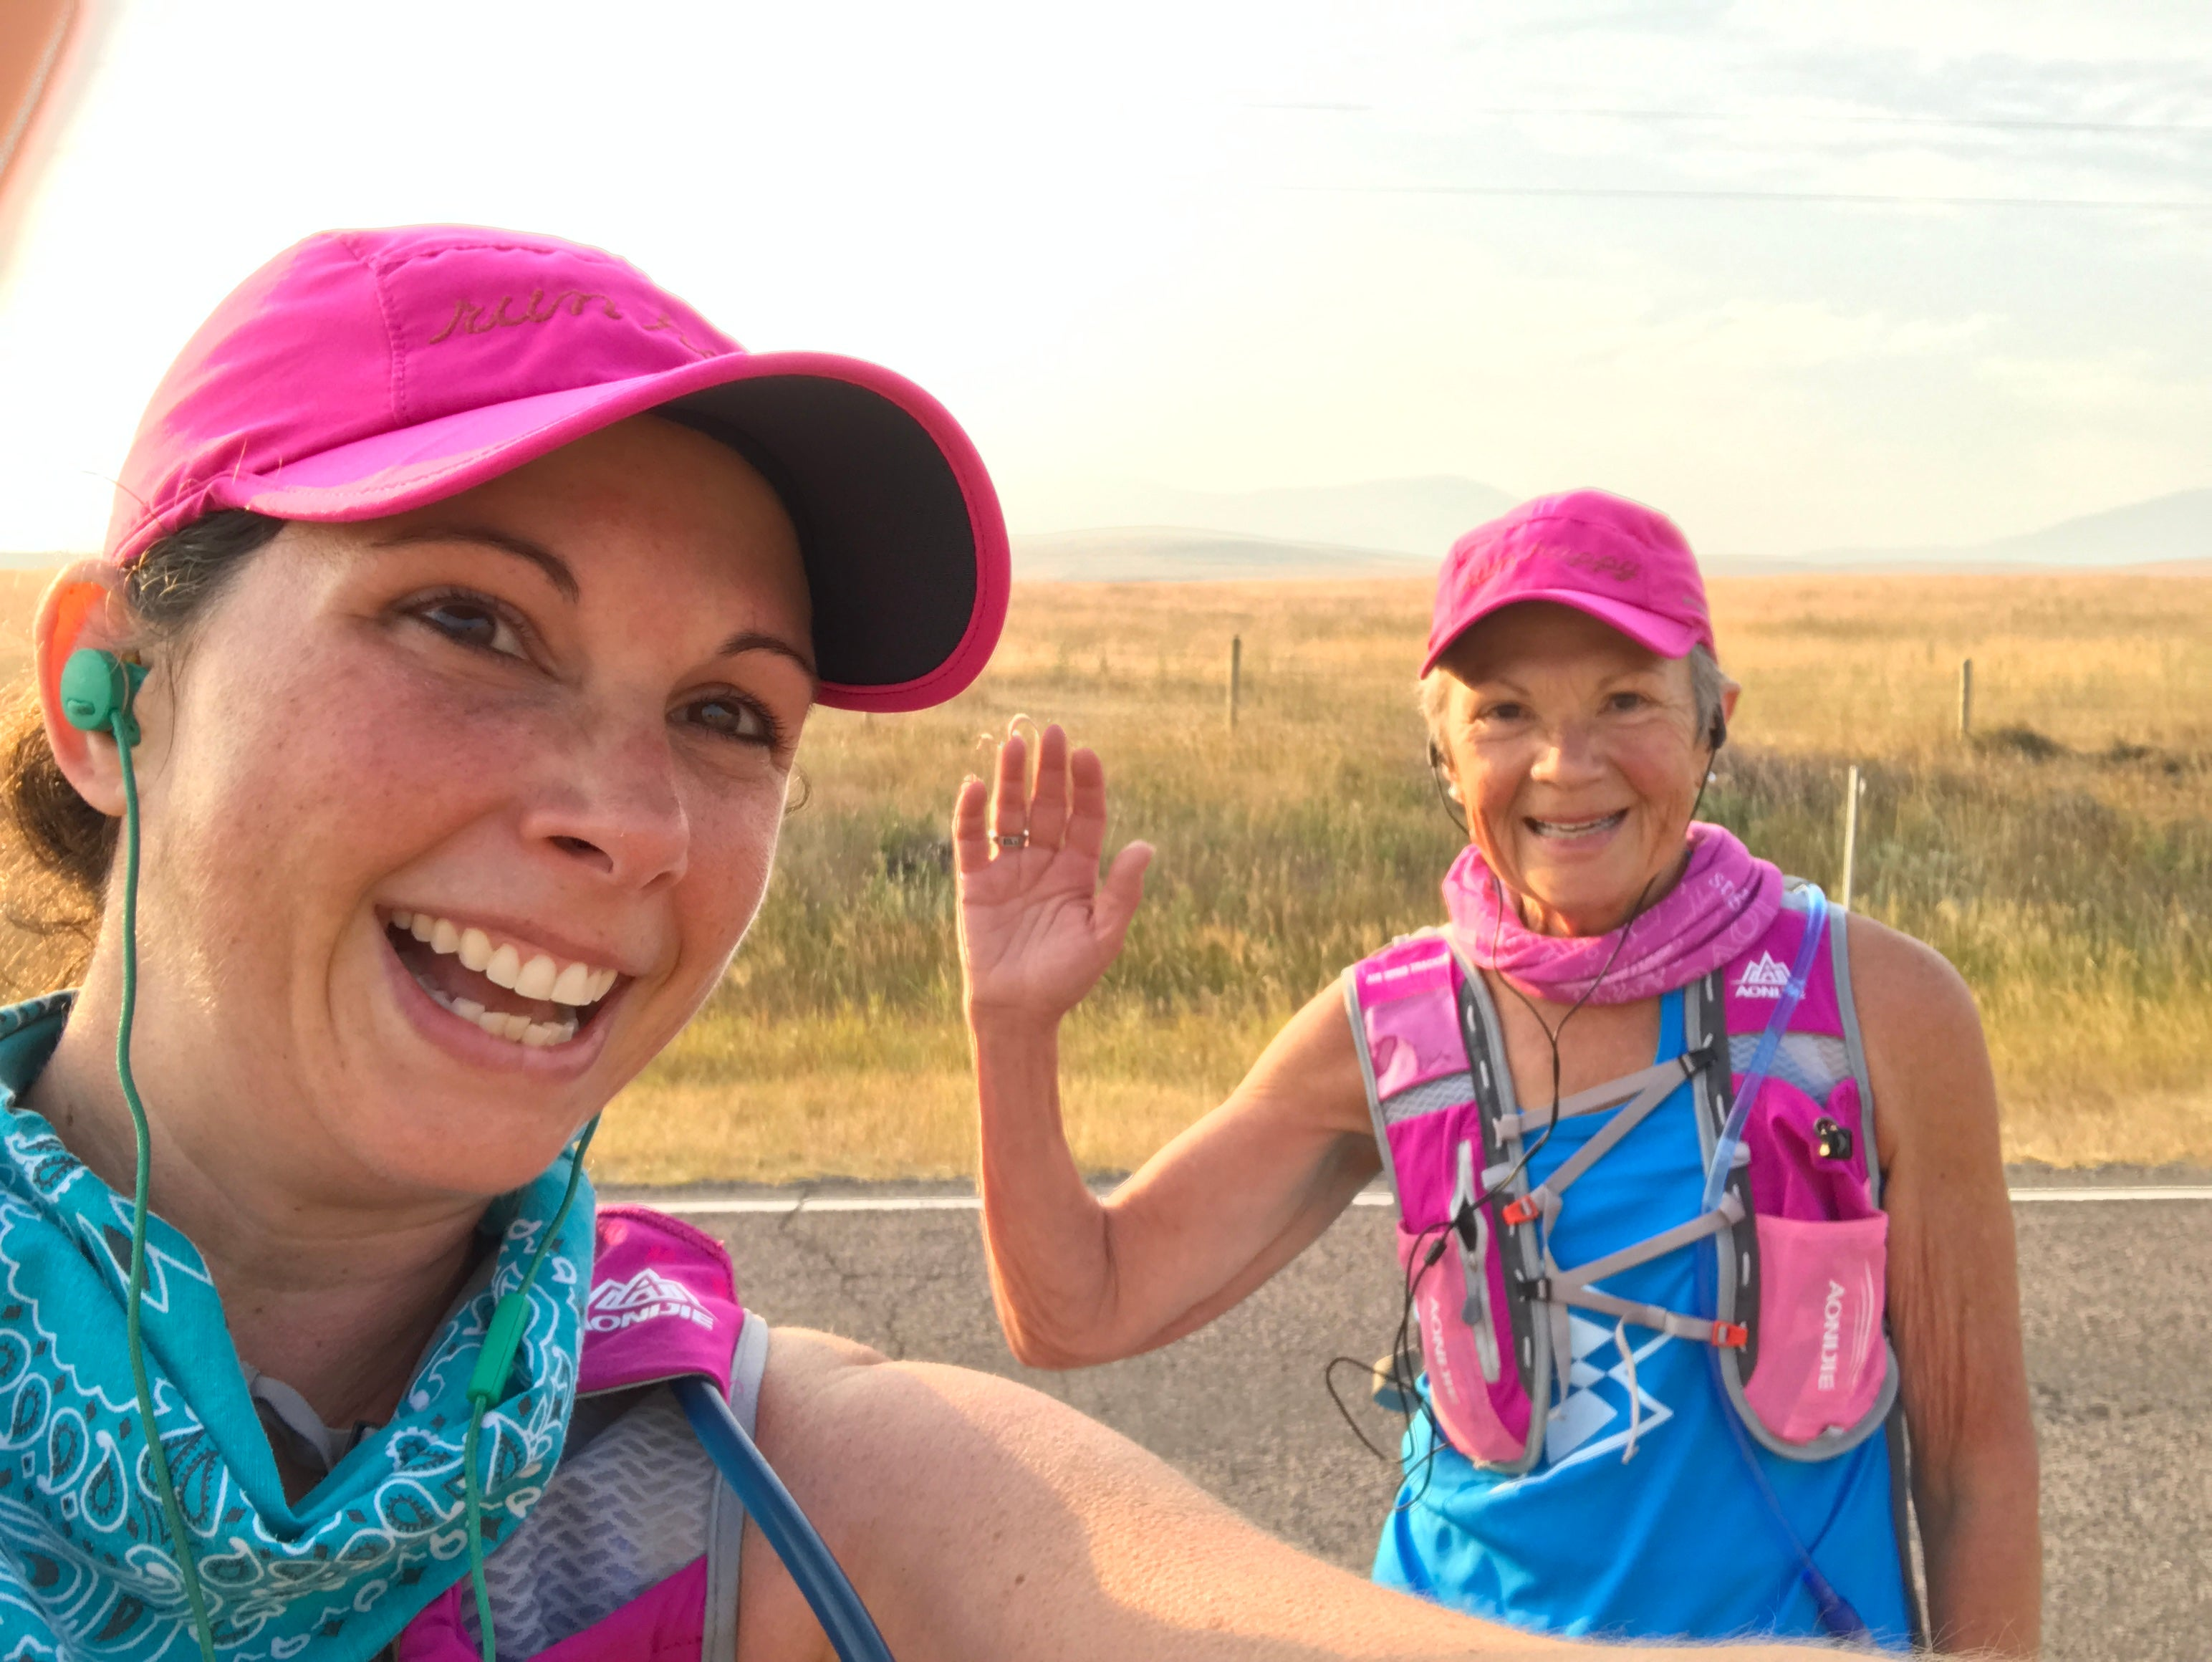 Kelly Herron with her mom during a run